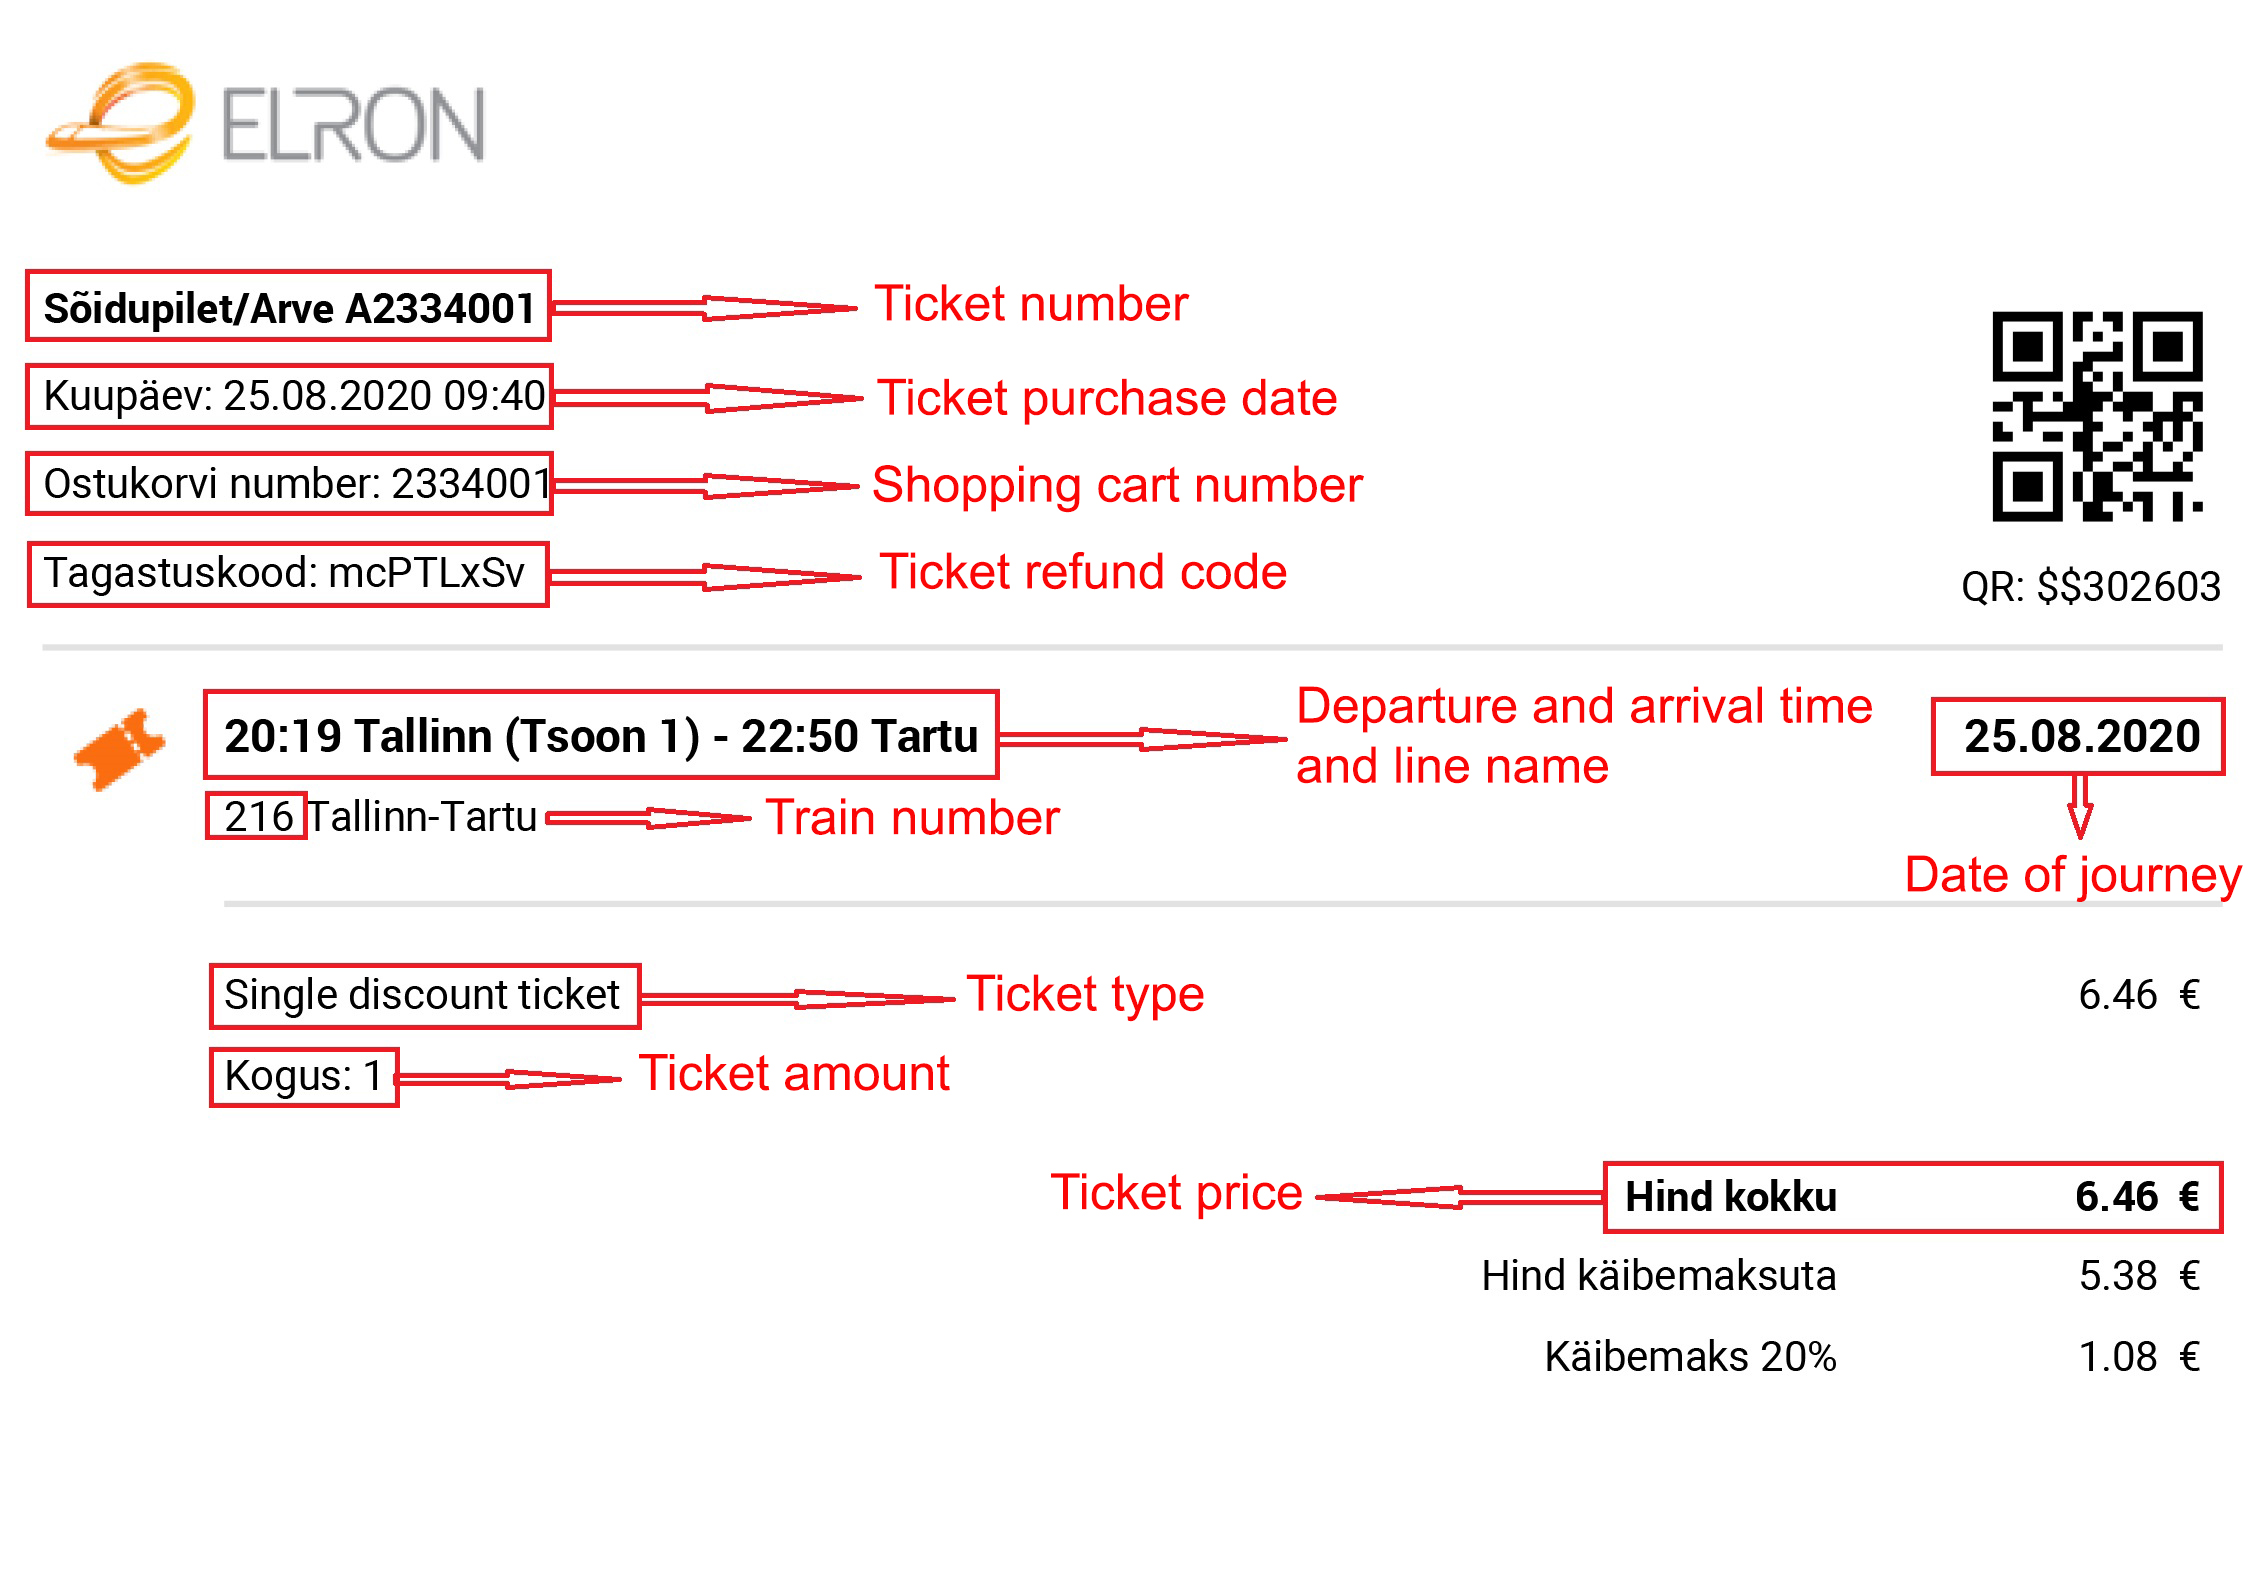 How to read Elron trainticket